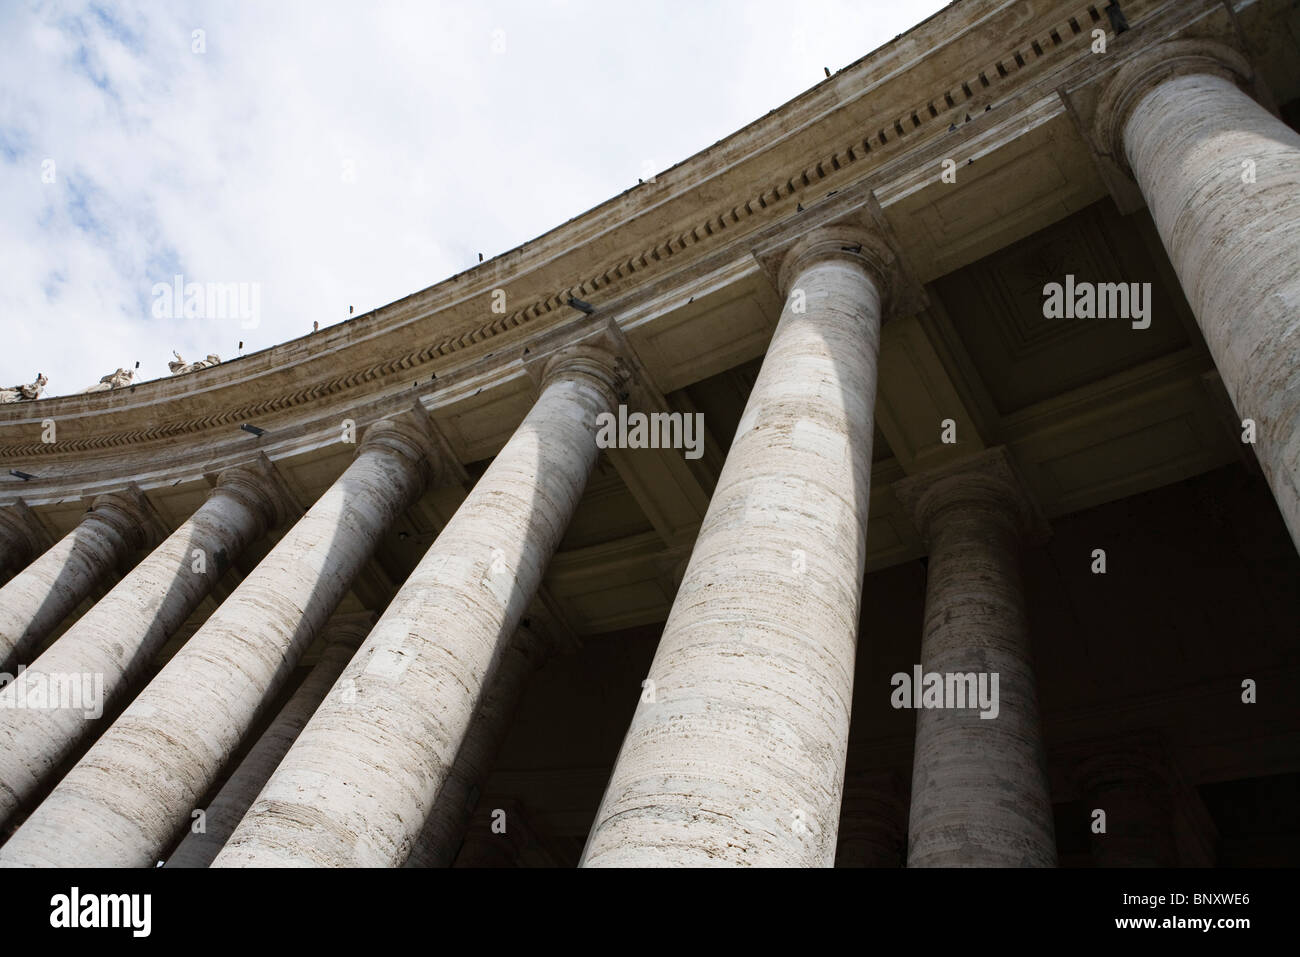 Colonnade of St. Peter's Square, Rome, Italy Stock Photo